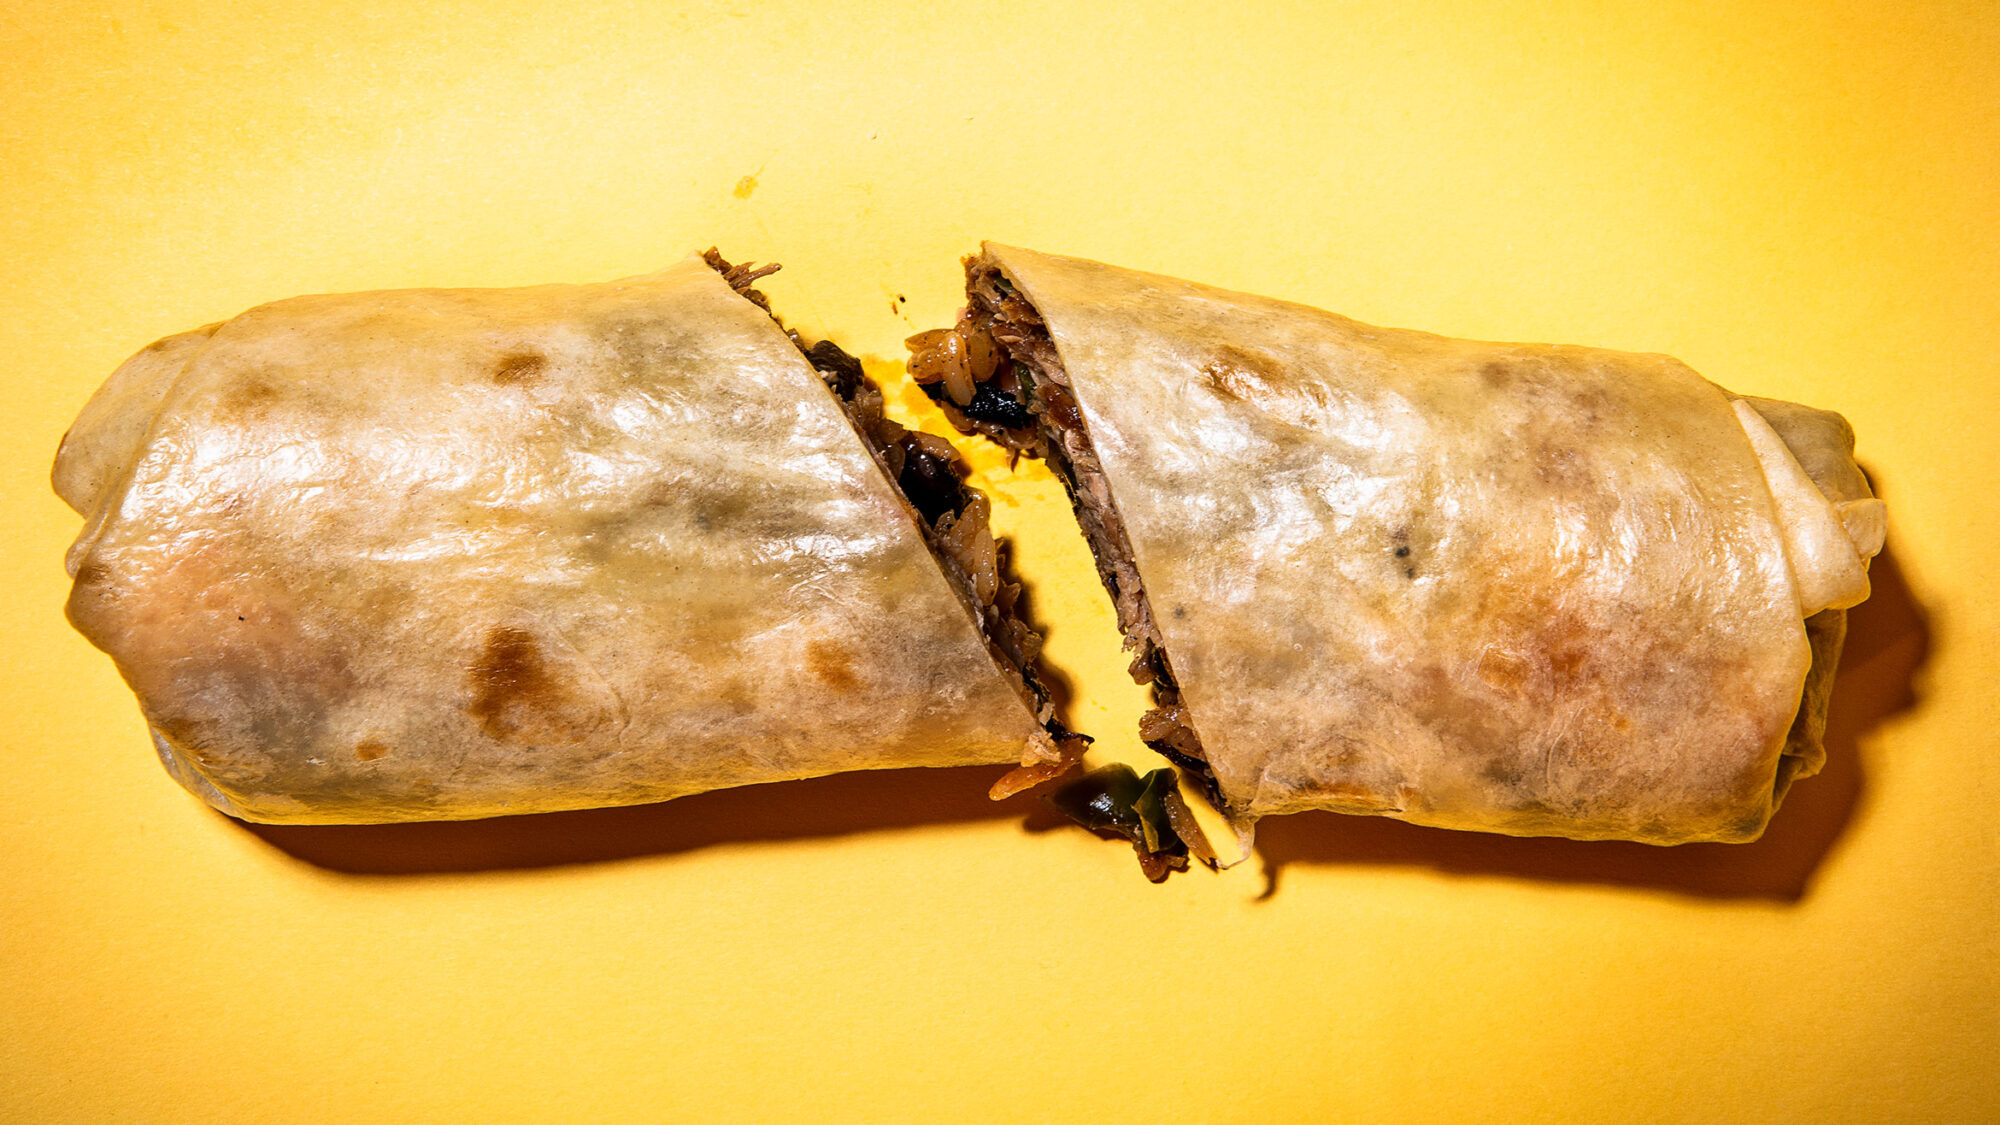 Article-Flour-Tortilla-Burrito